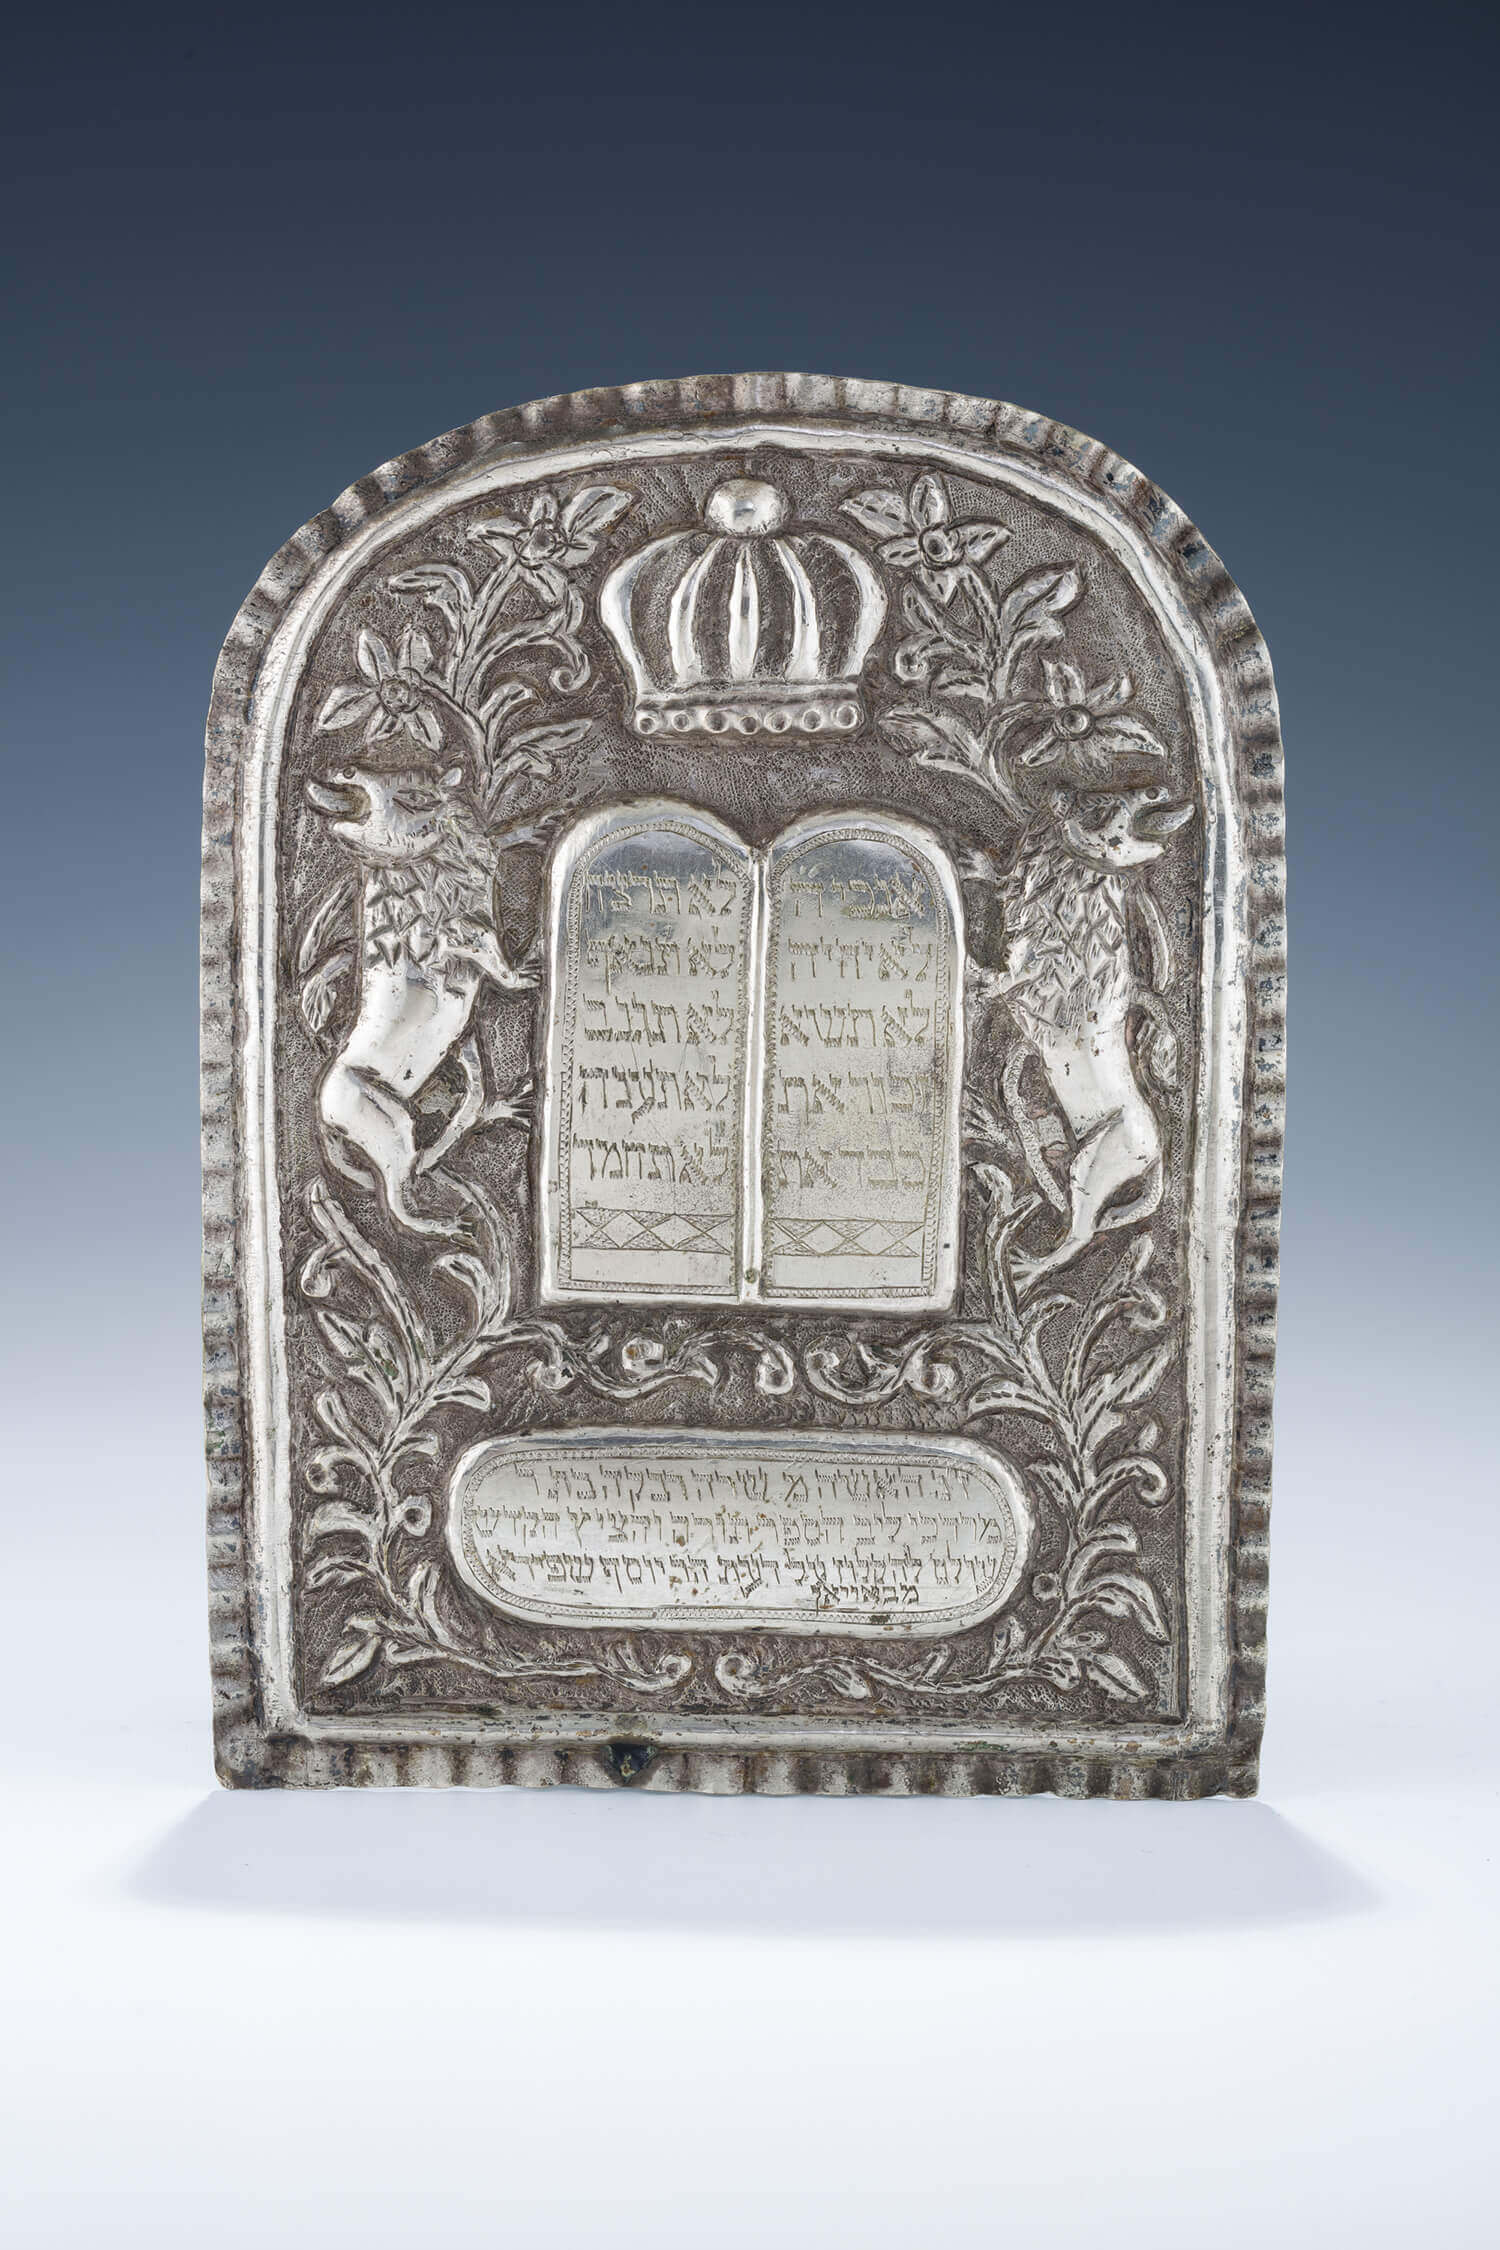 062. AN EXCEPTIONALLY RARE AND IMPORTANT TORAH SHIELD WITH BOYANER CHASSIDIC INTEREST